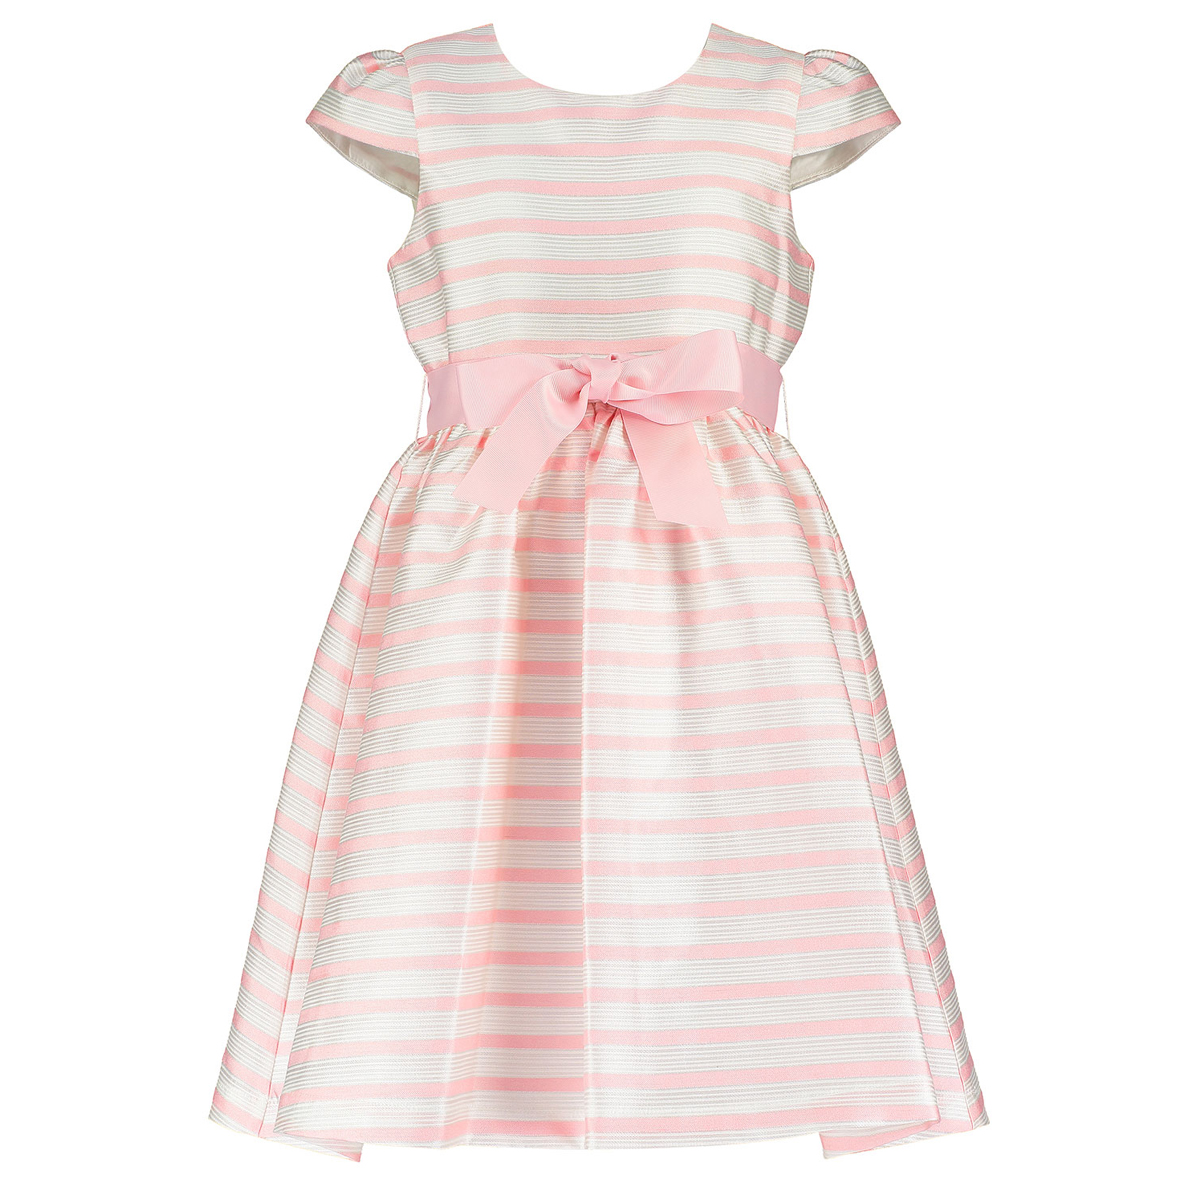 Holly Hastie Dress in Pink White Stripe Jacquard